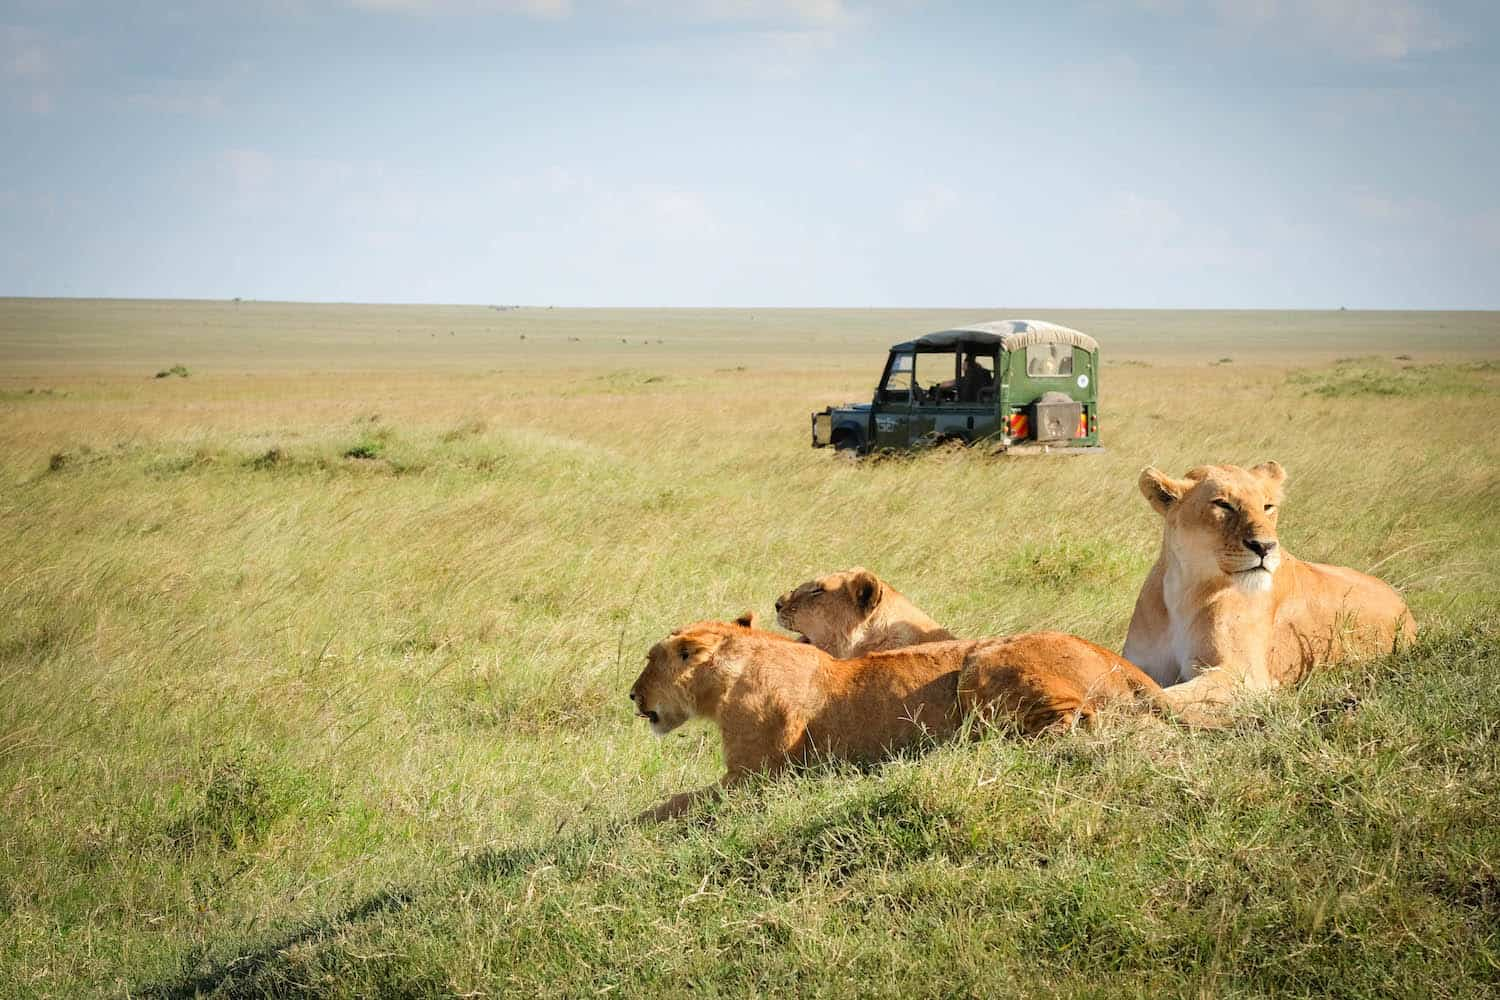 40+ AFRICAN SAFARI ANIMALS TO SEE + Where to See Them!